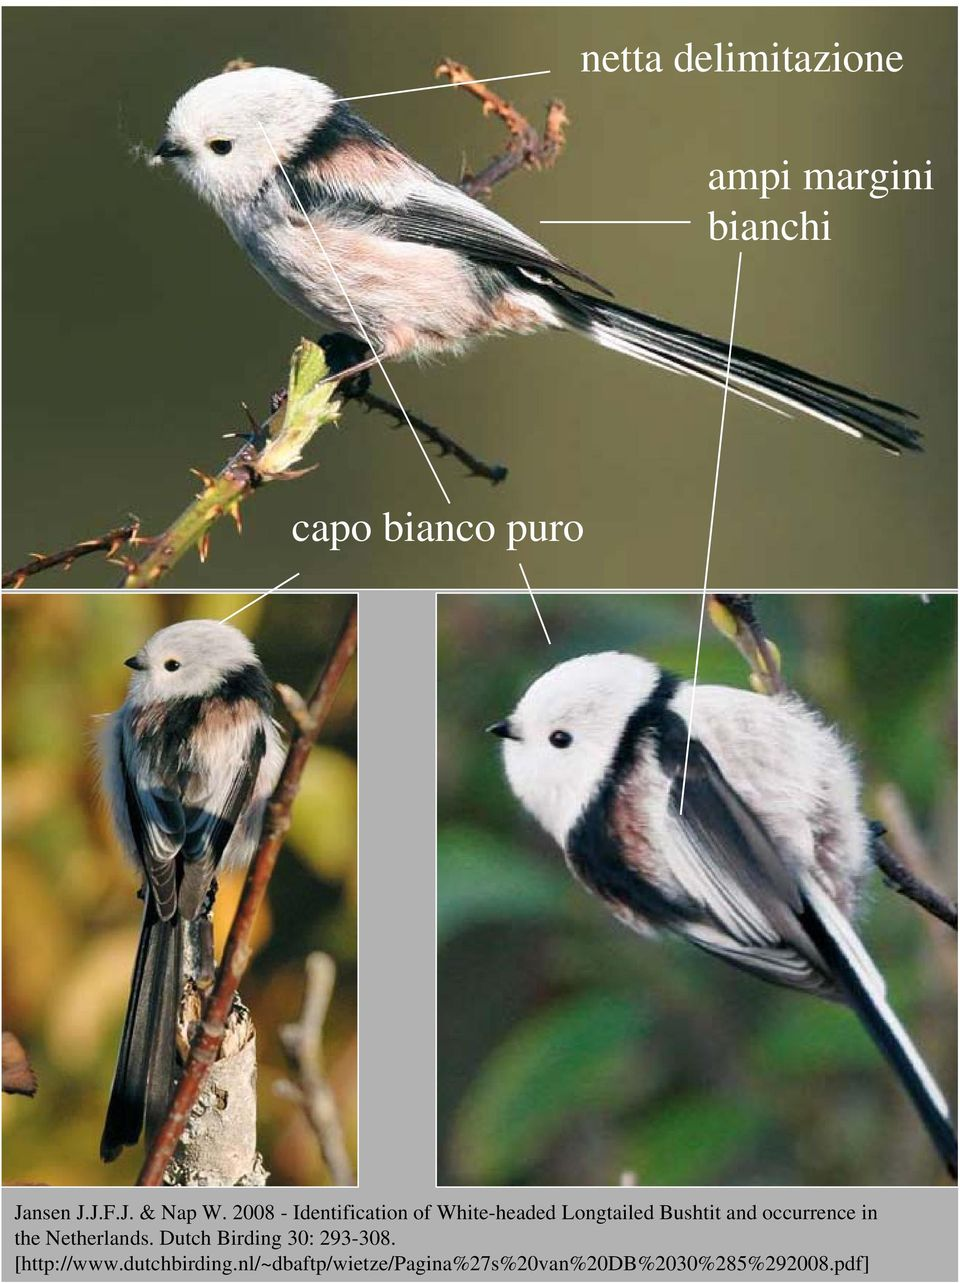 2008 - Identification of White-headed Longtailed Bushtit and occurrence